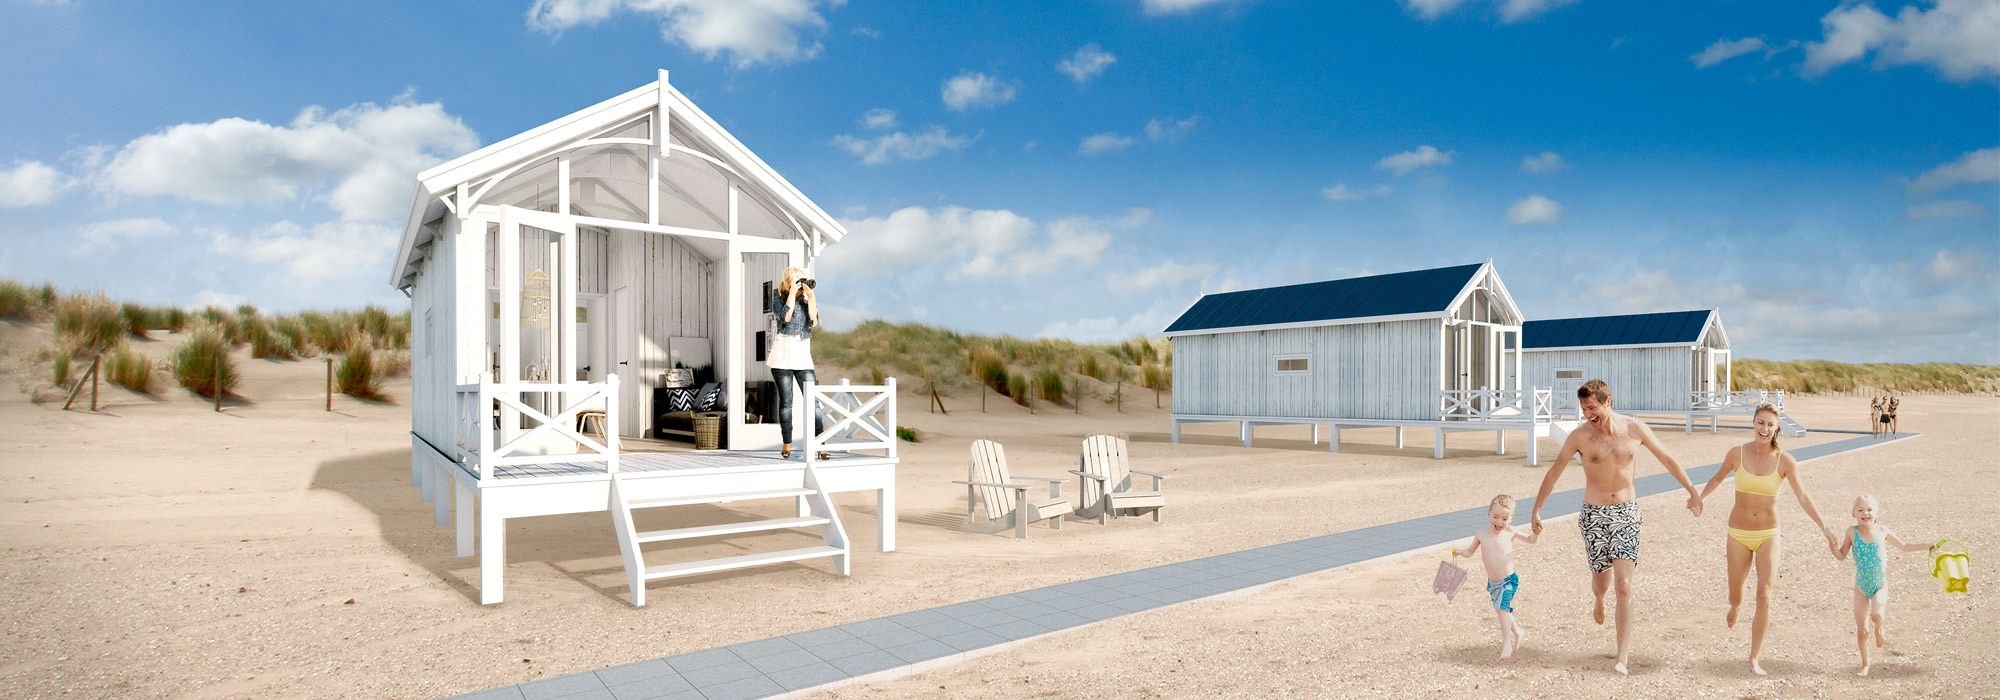 aufwachen am strand von den haag in holland jetzt k nnen. Black Bedroom Furniture Sets. Home Design Ideas